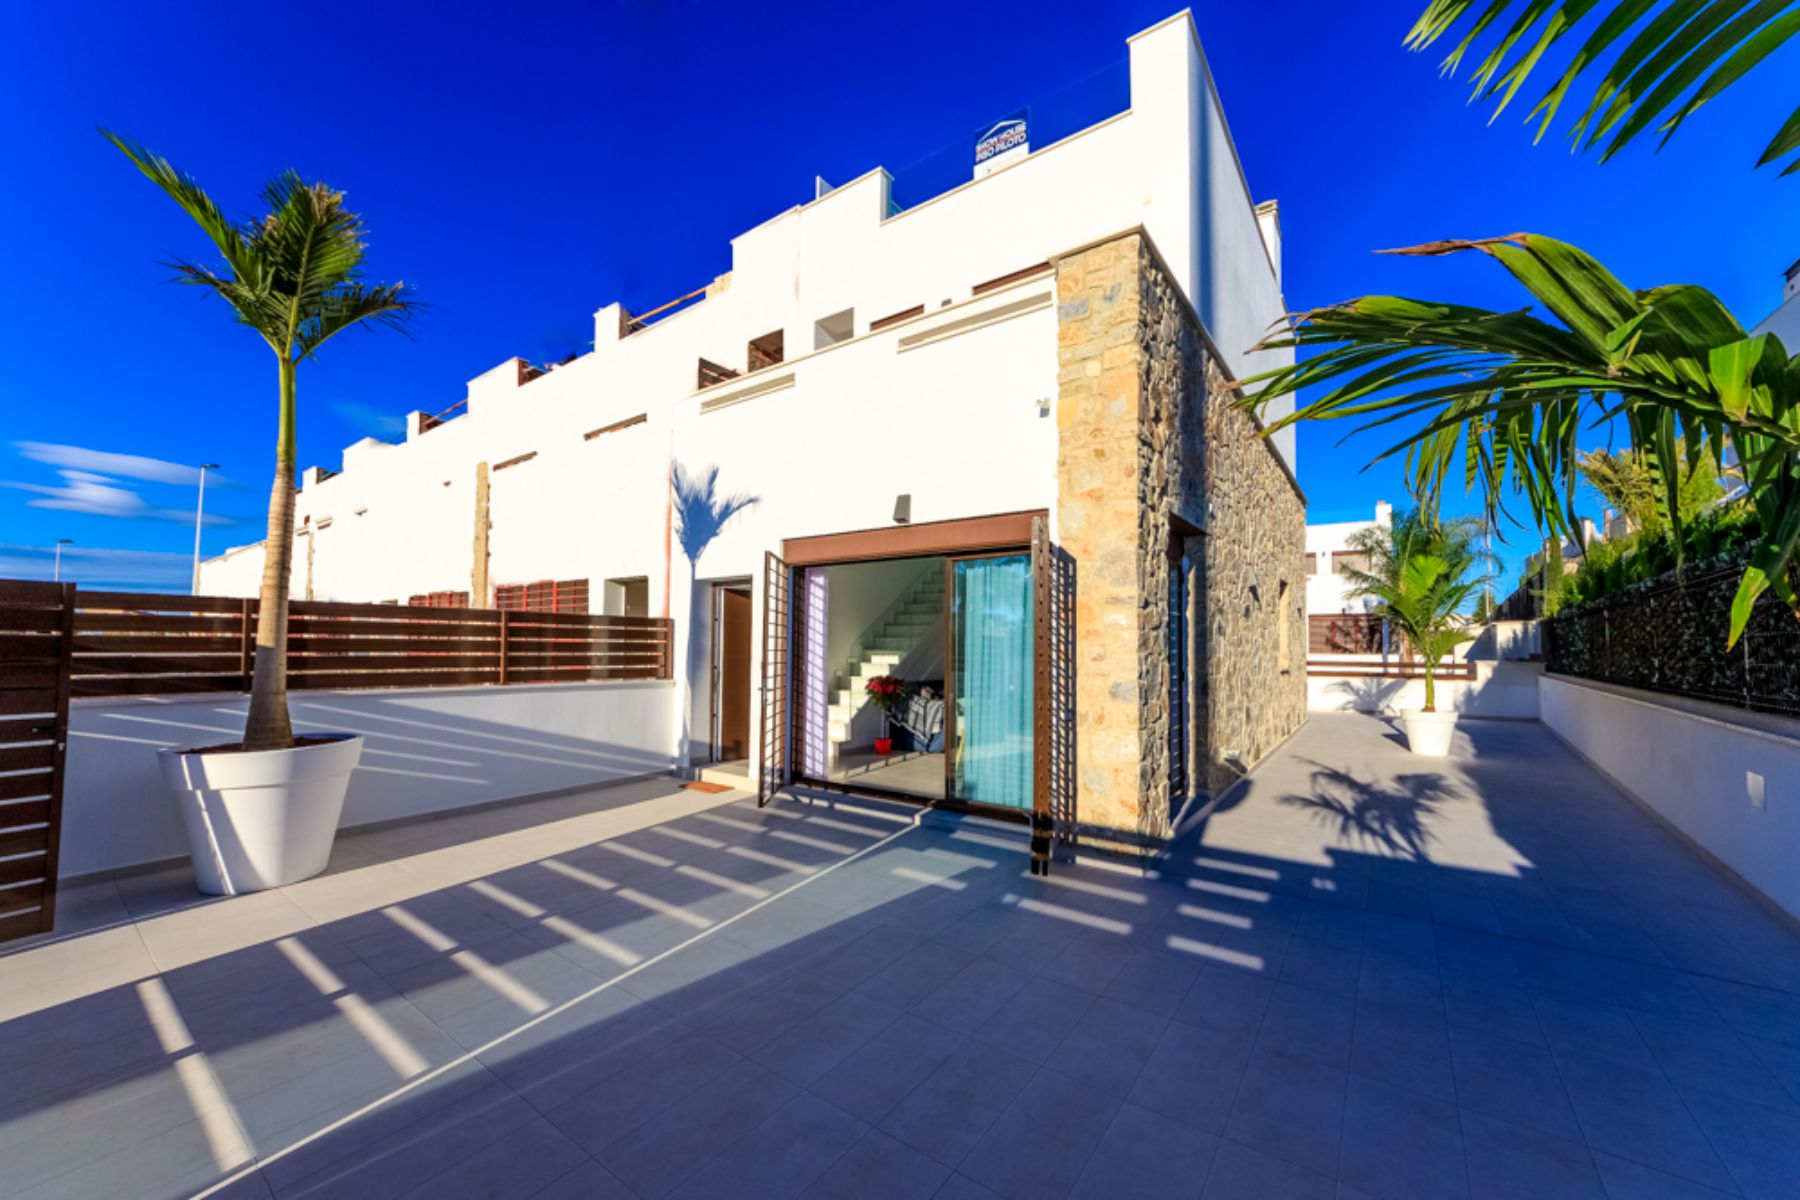 New Build 3 Bedrooms Townhouses with Solarium For Sale in Torrevieja